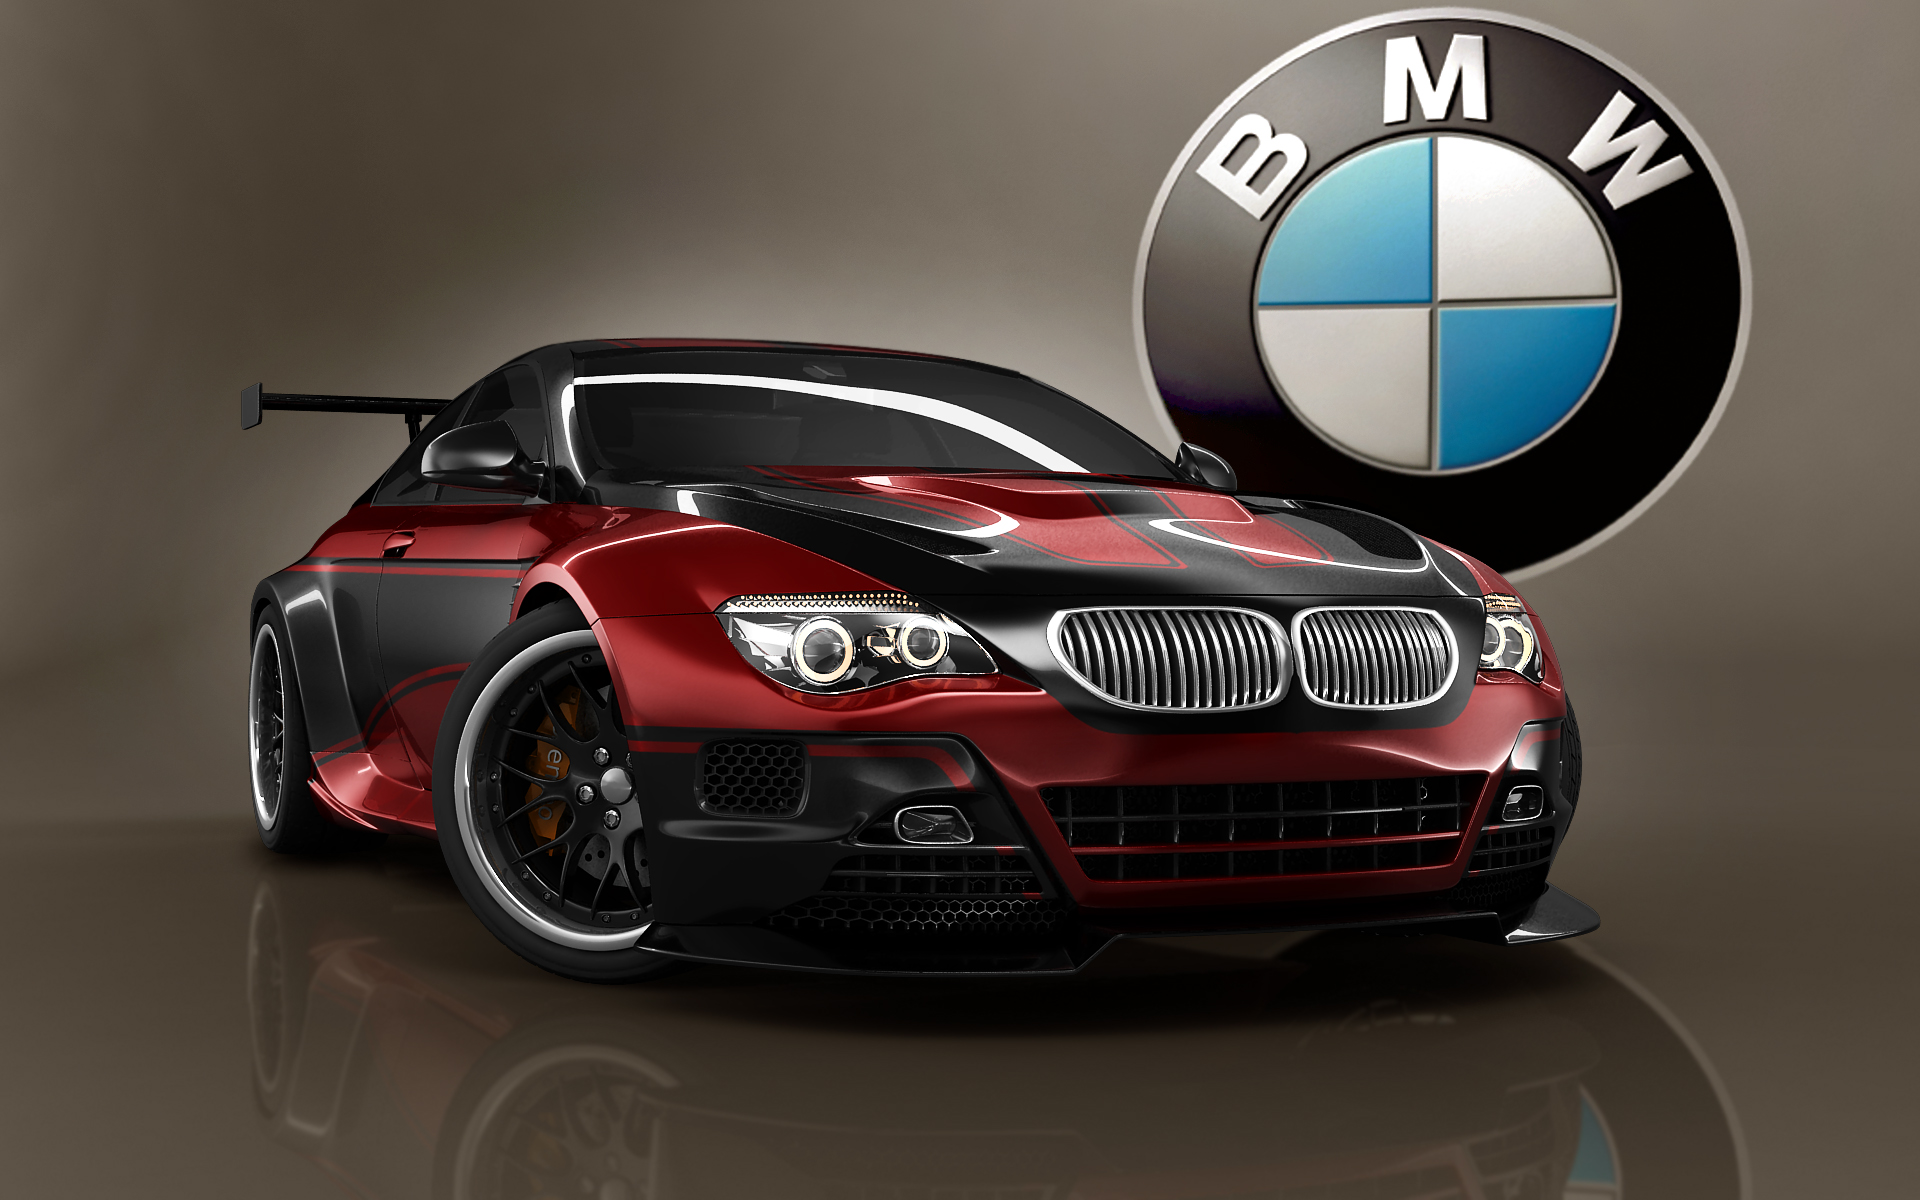 Bmw M6 Gt By Stefanmarius On Deviantart